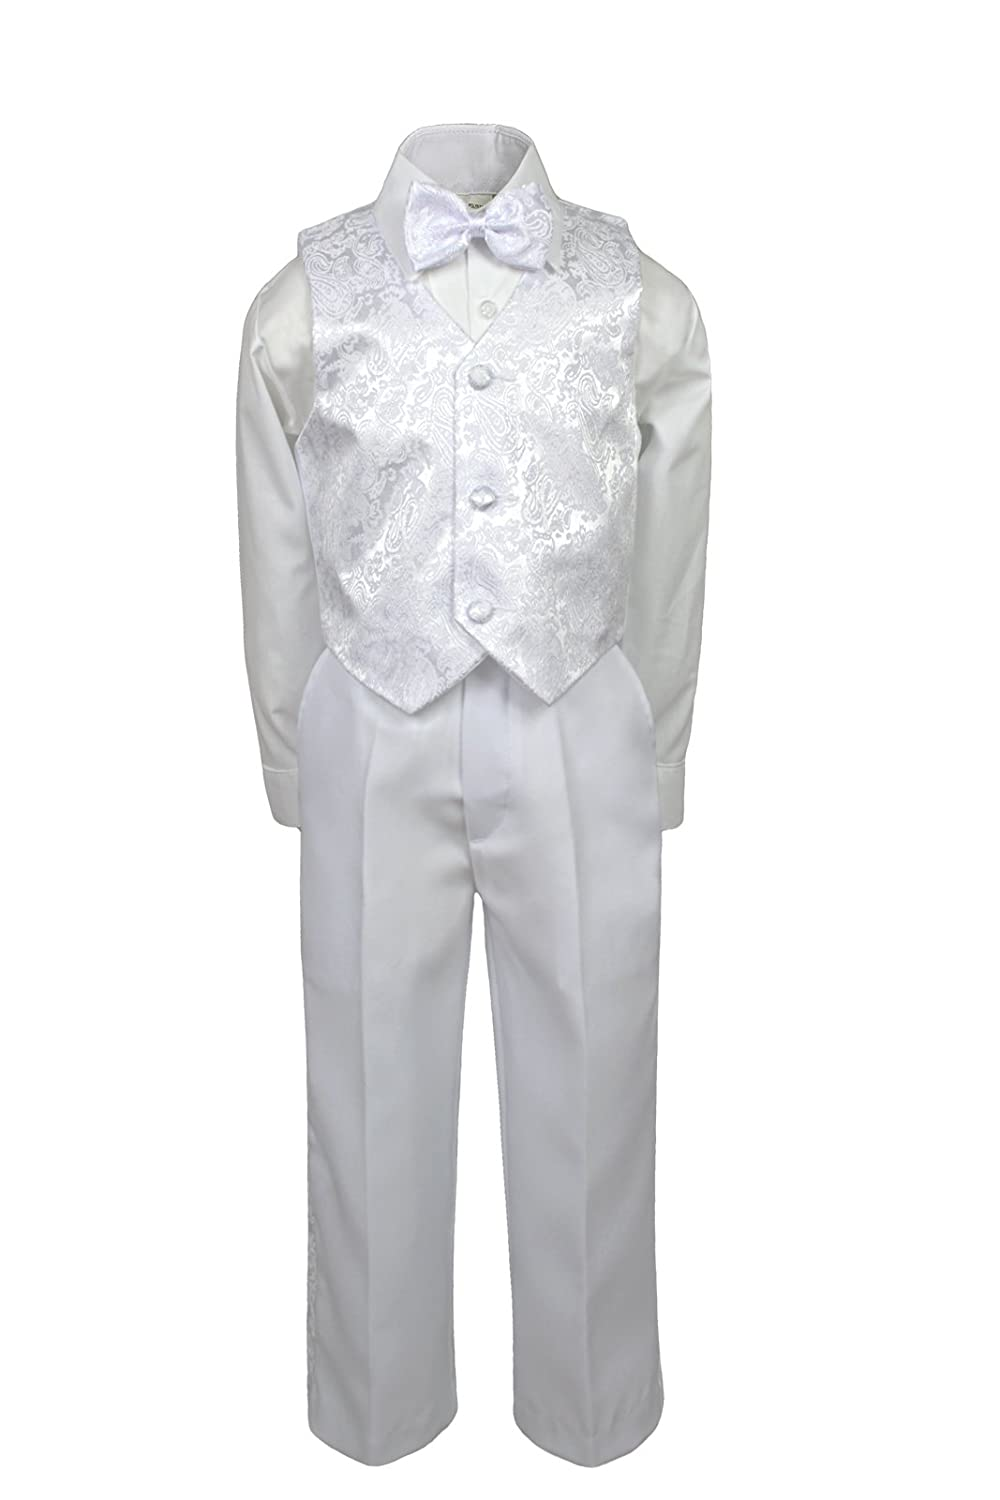 Leadertux 4pc Formal Baby Toddler Boys Baptism White Paisley Vest Sets Suits S-7 (3T)